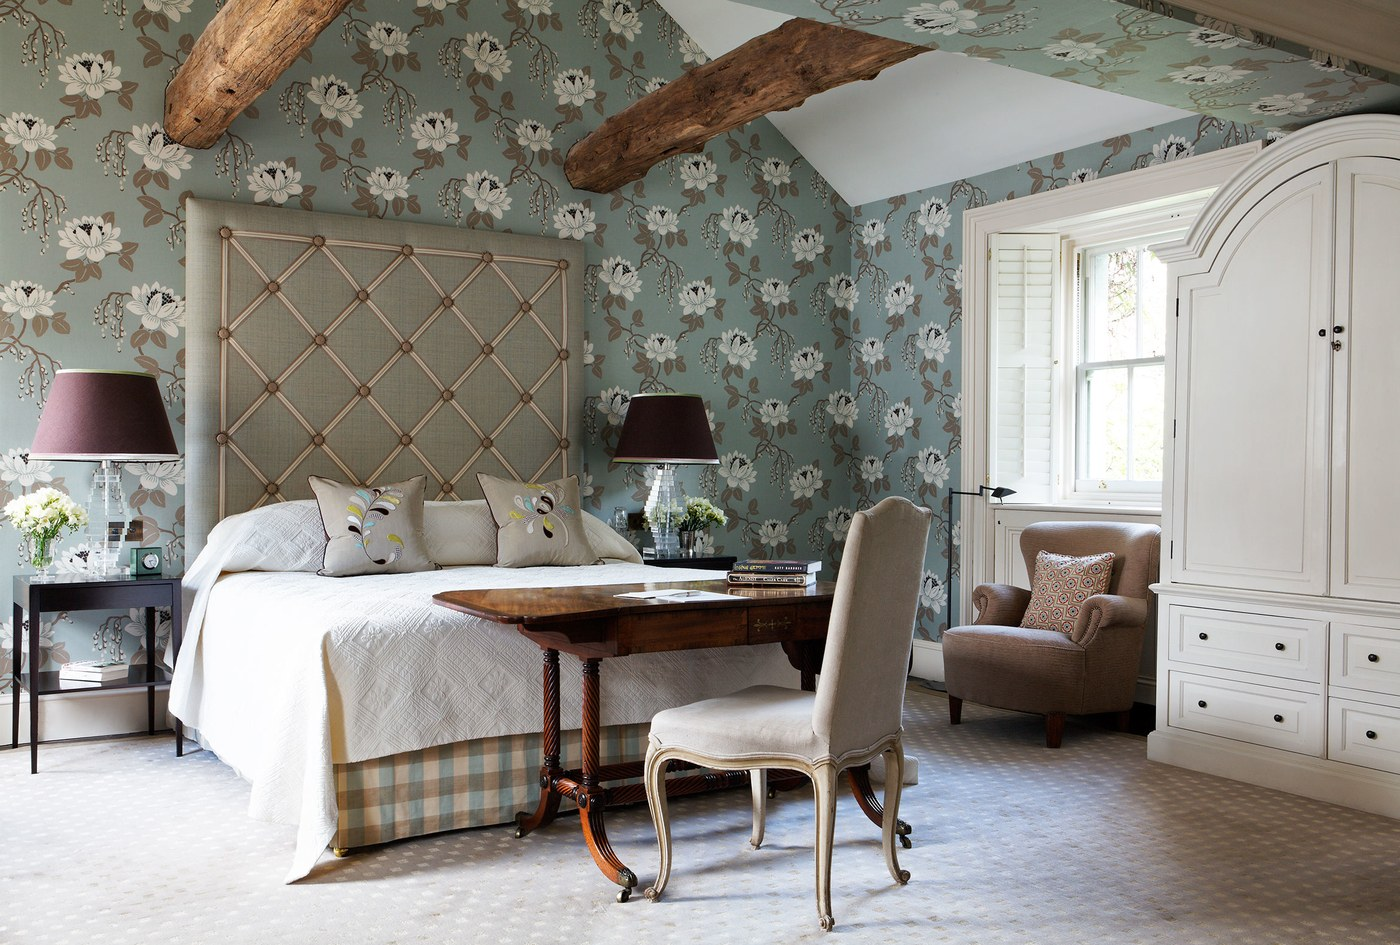 The Best British Interior Designers By AD 100 List – I Part alidad Bedroom